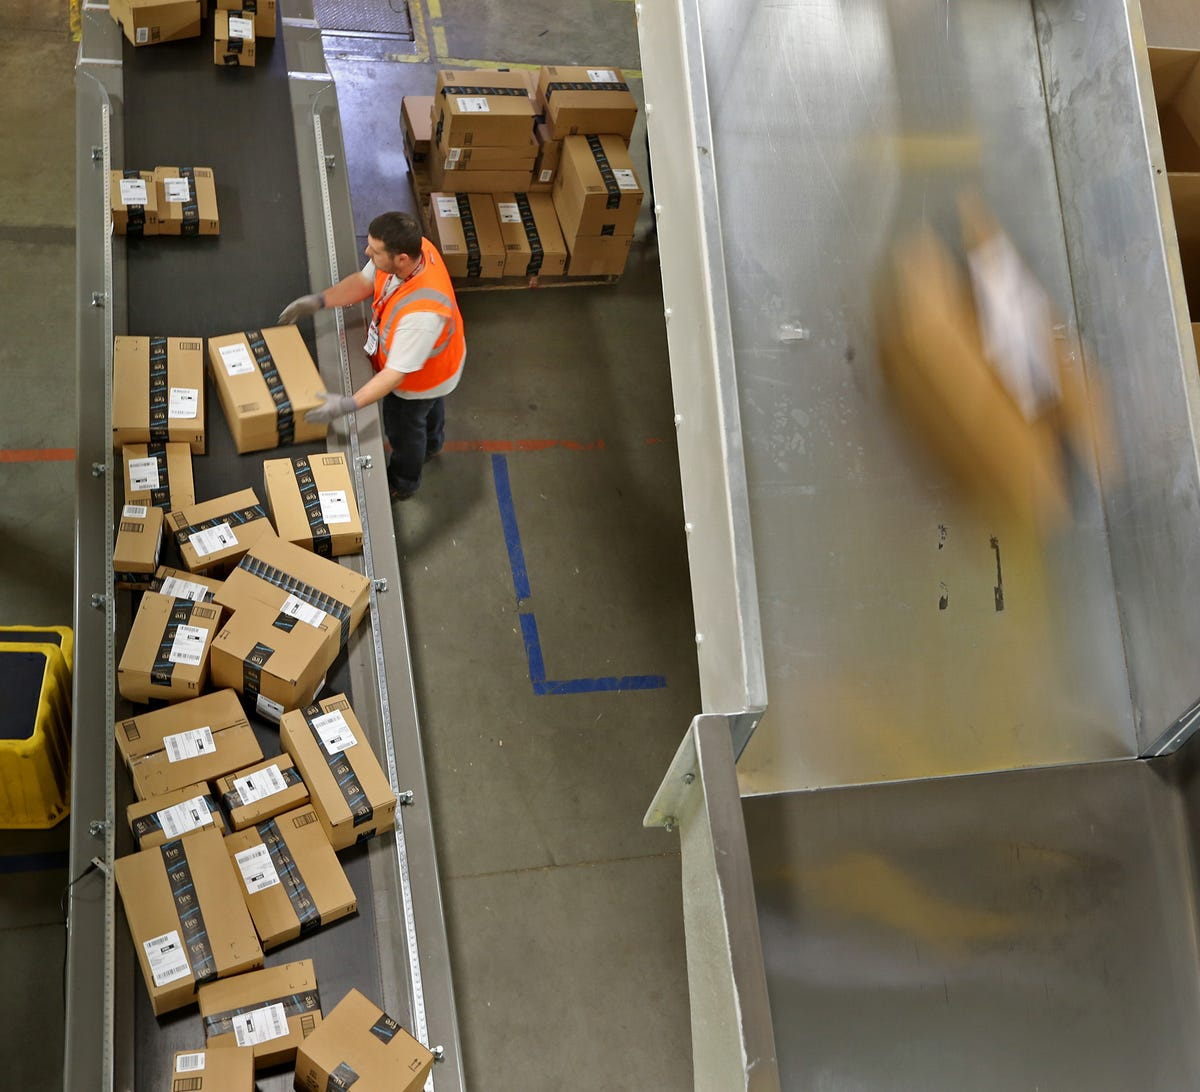 Want to work for Amazon? You'll have a great chance Wednesday